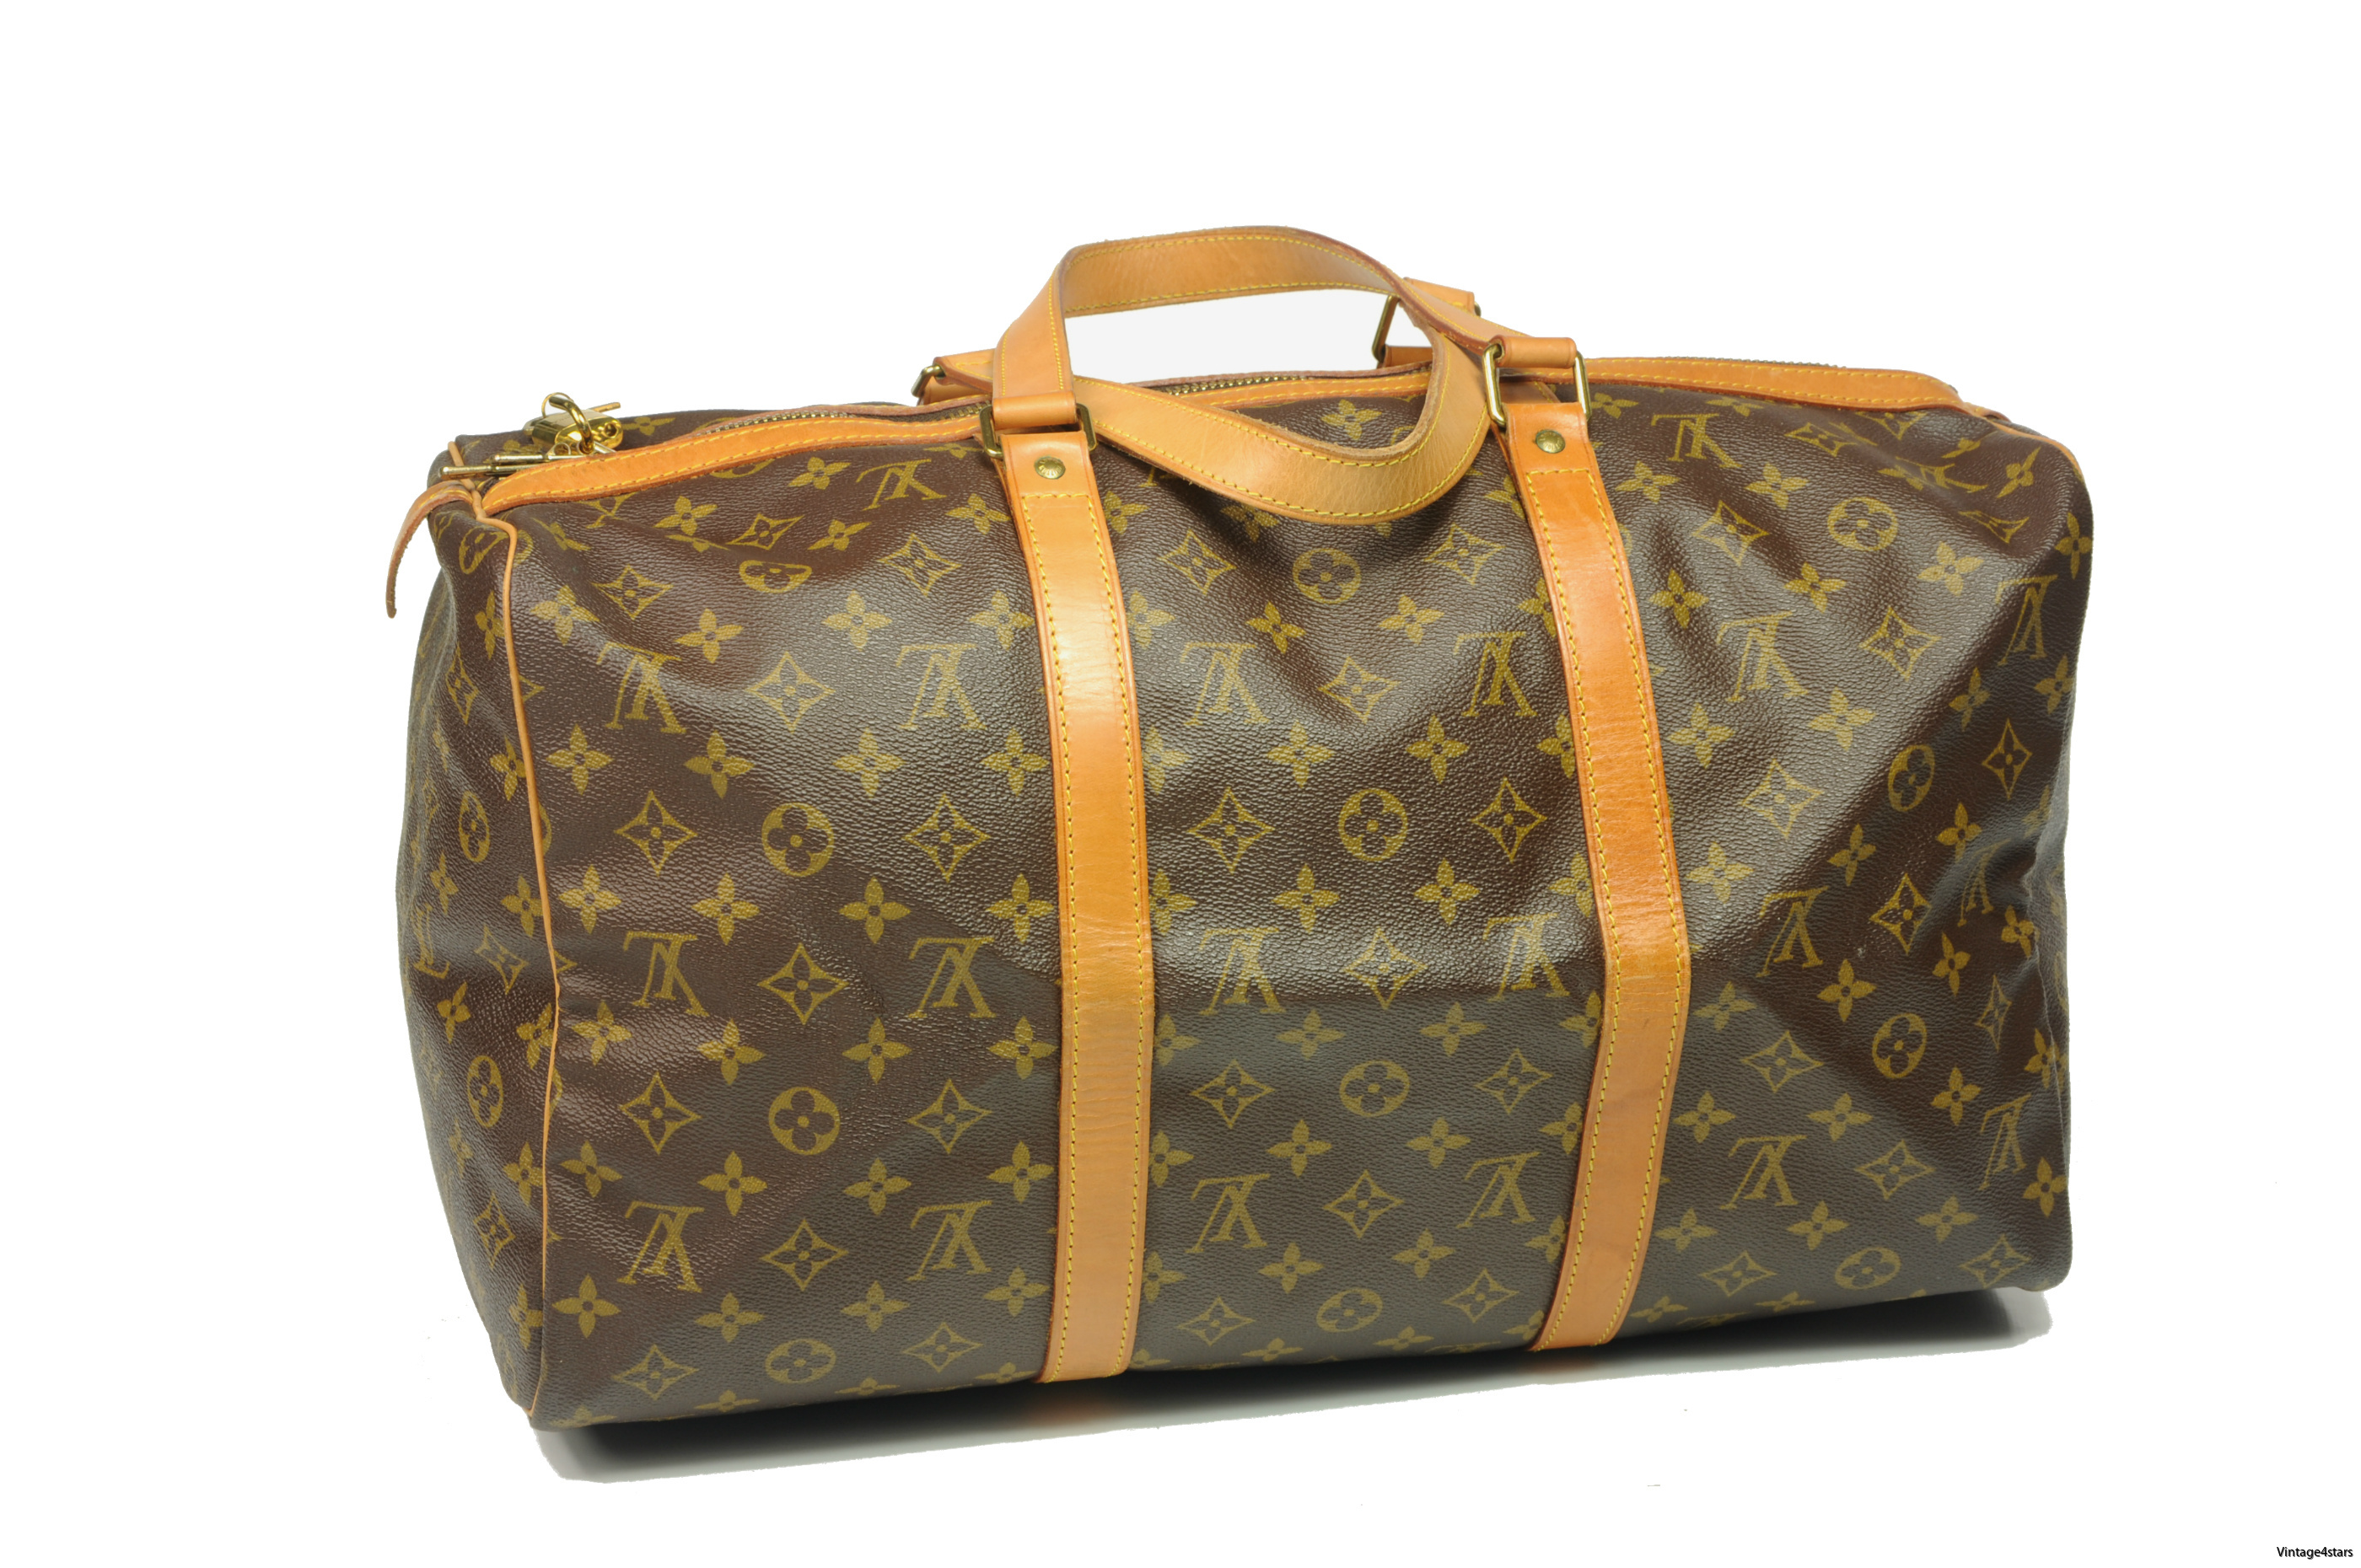 Louis Vuitton Sac Souple 45 1a